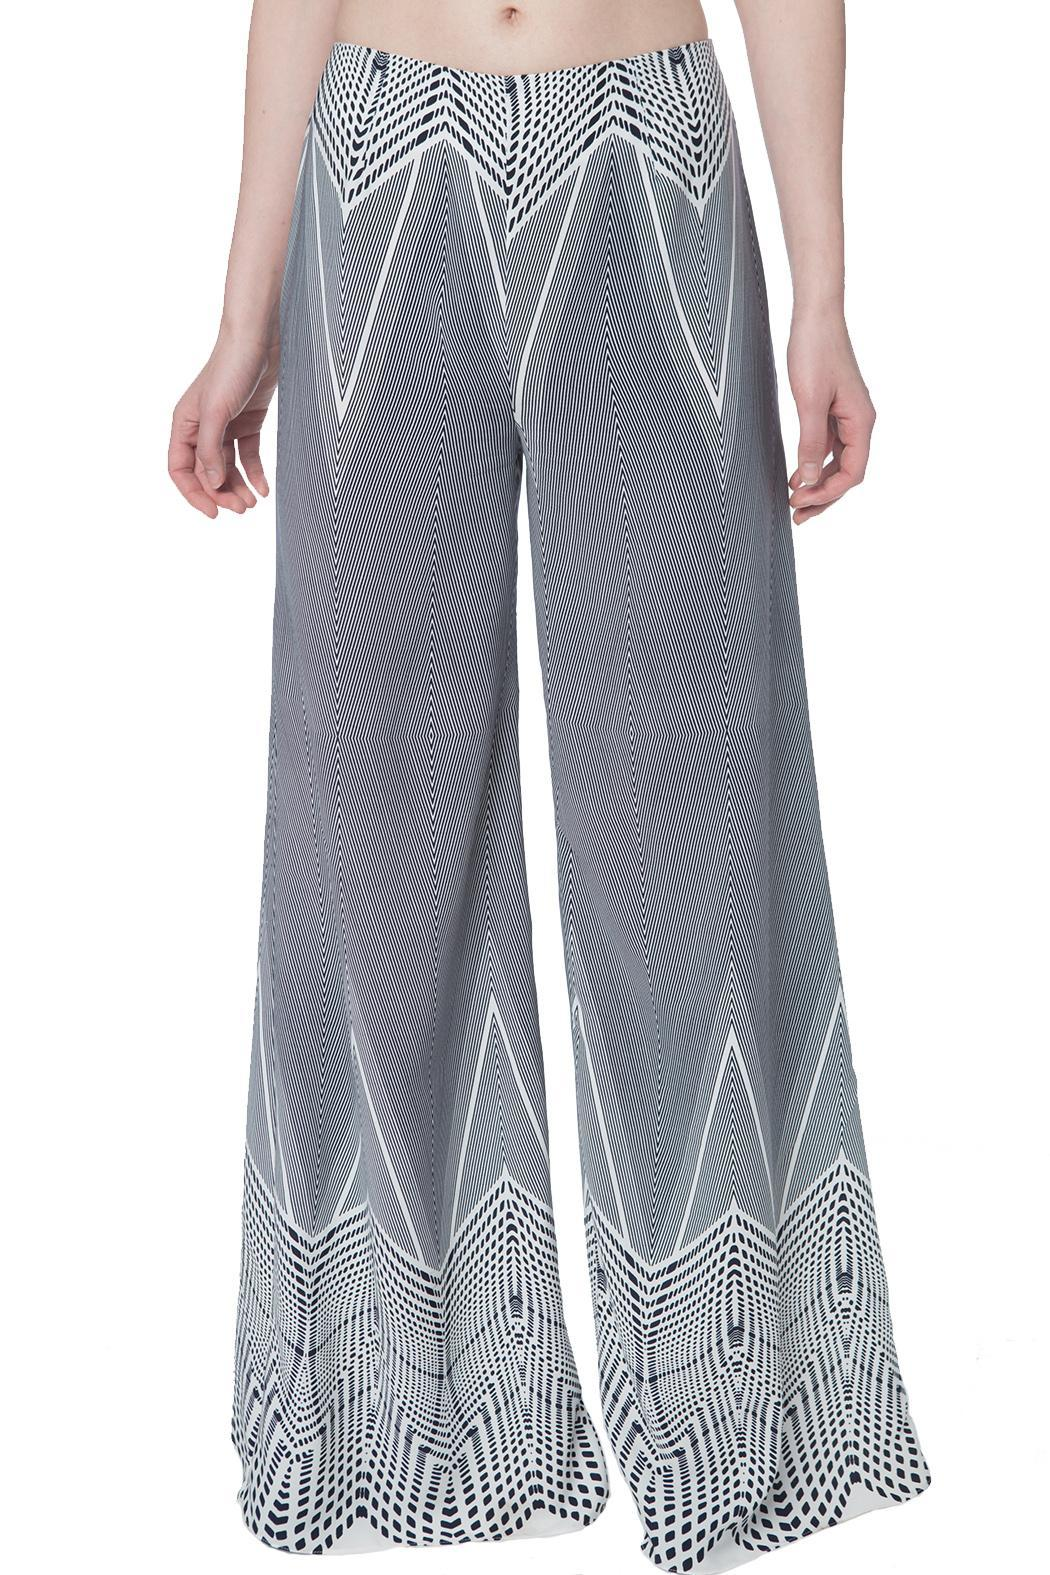 OHLENDORF atelier Graphic Palazzo Pant - Front Full Image